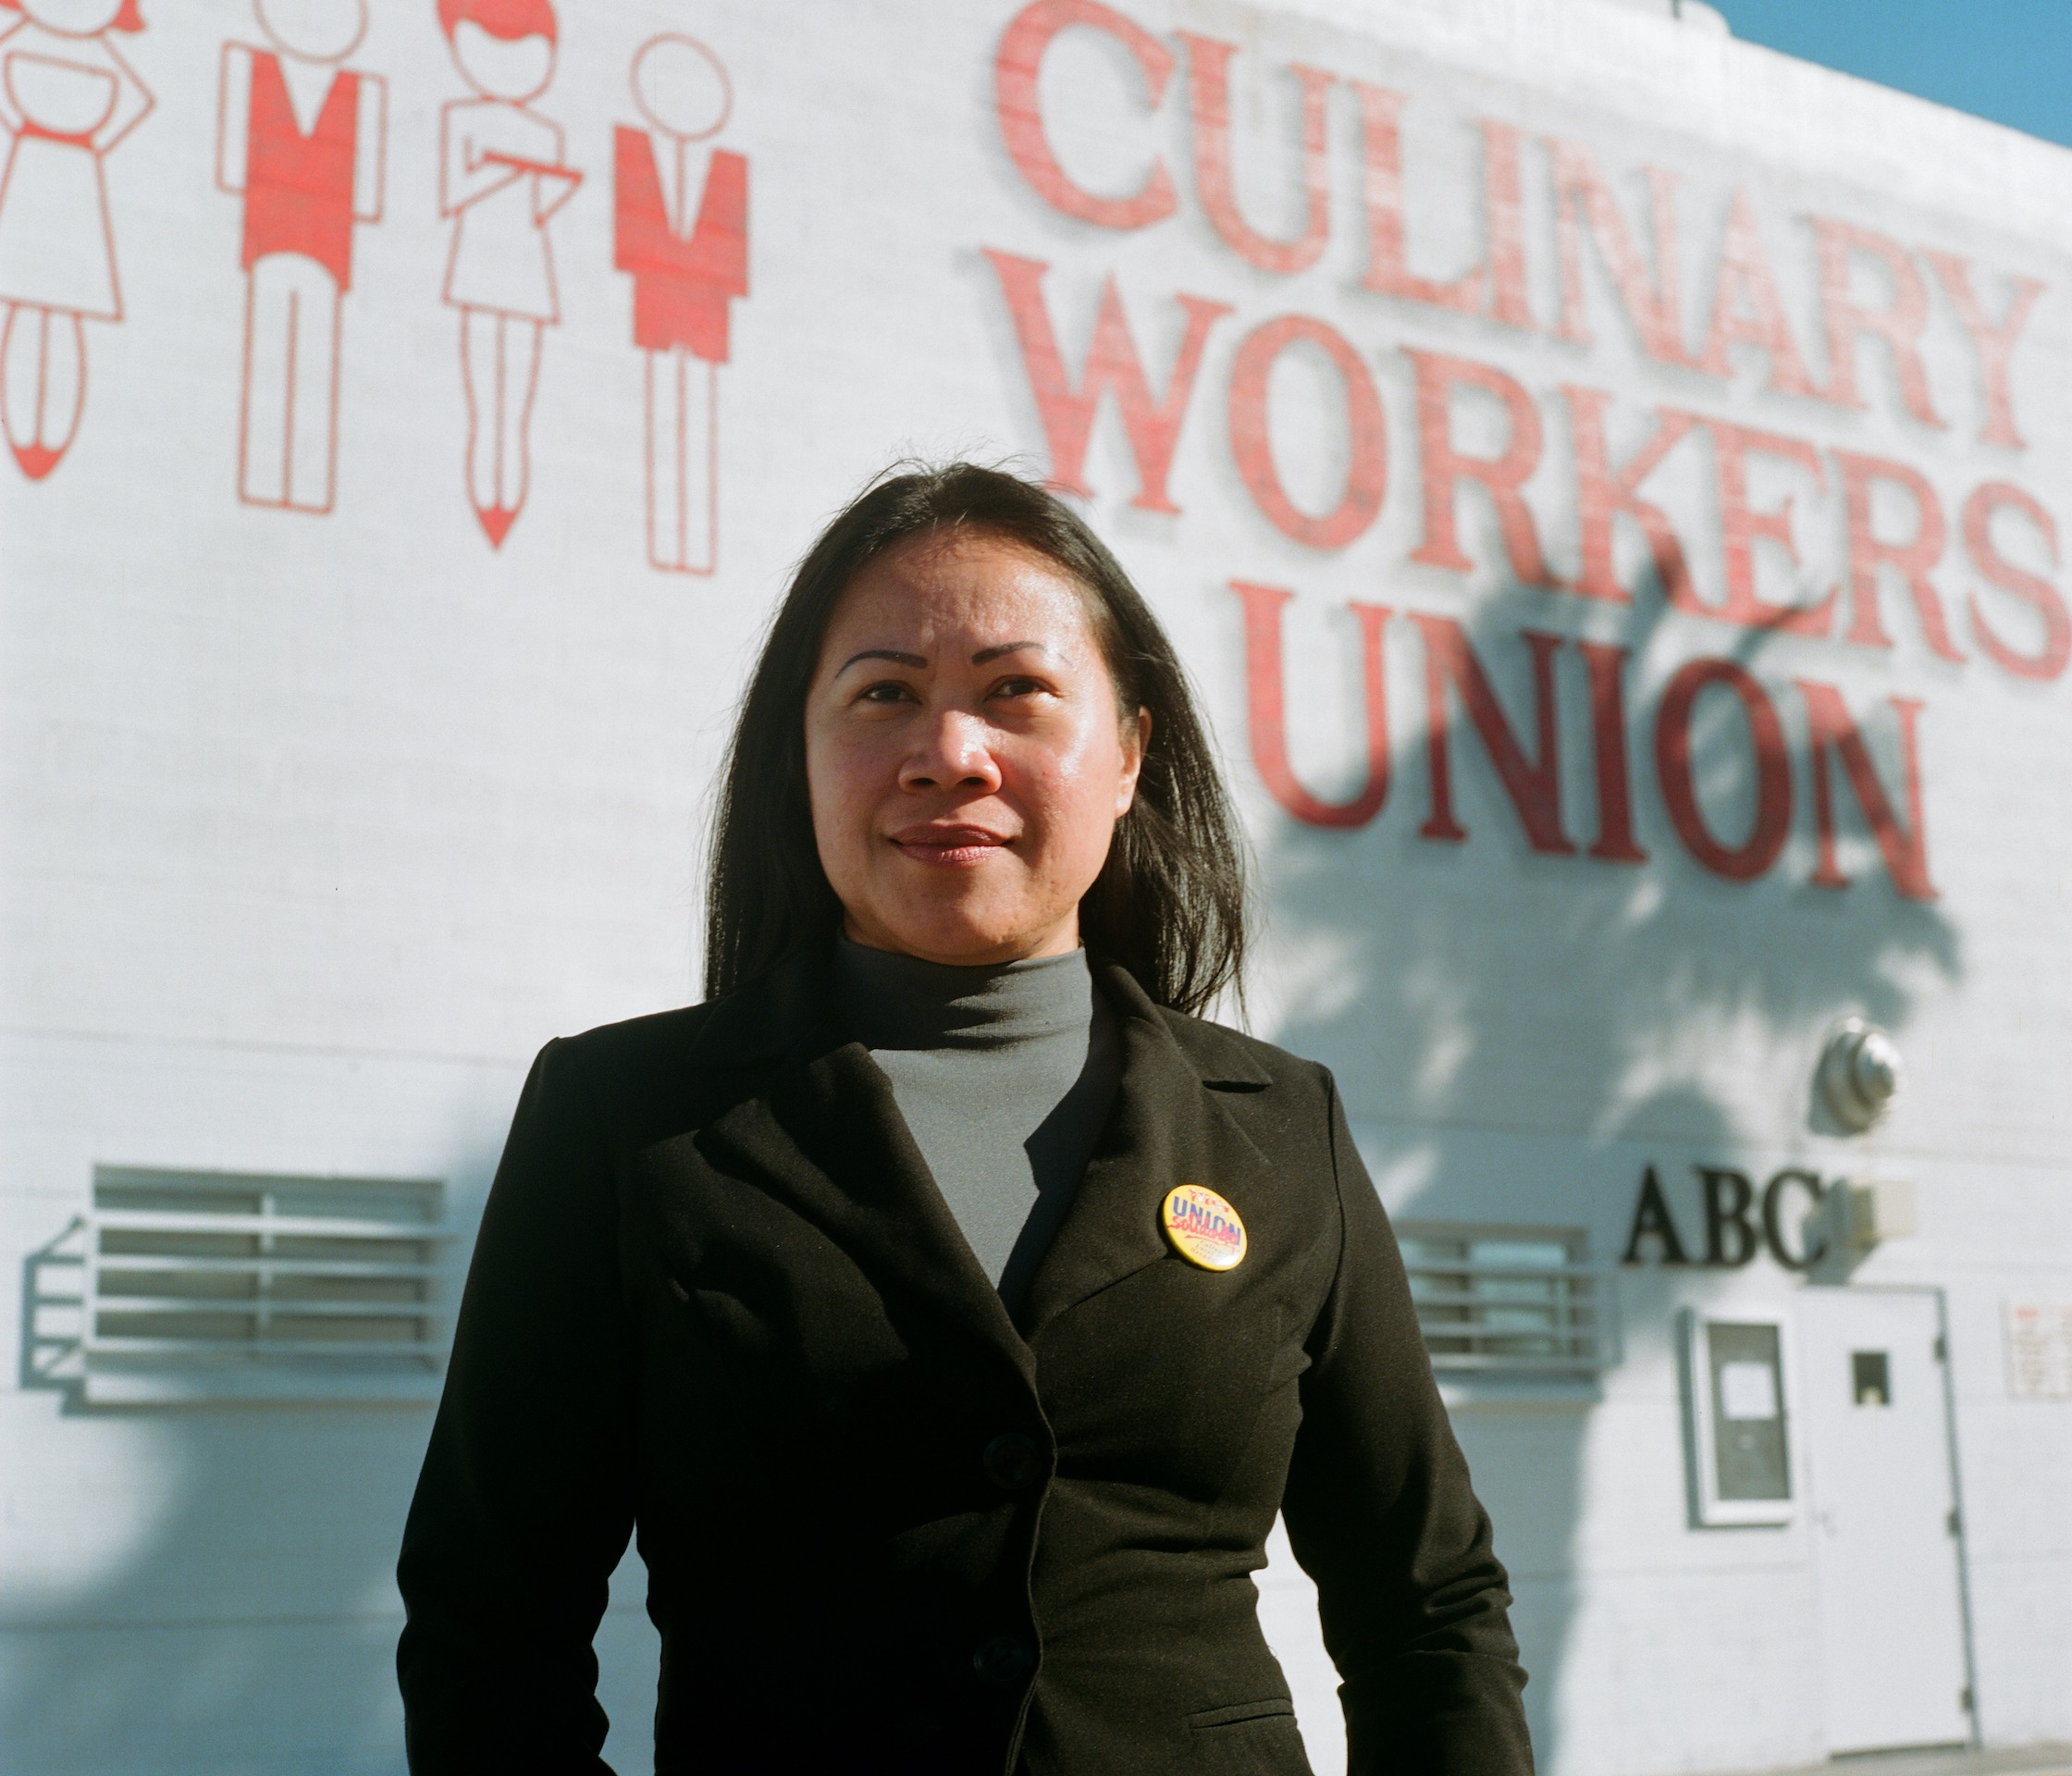 Maria Clara, a casino porter at the Golden Nugget and member of Culinary 226, which declined to endorse a candidate.